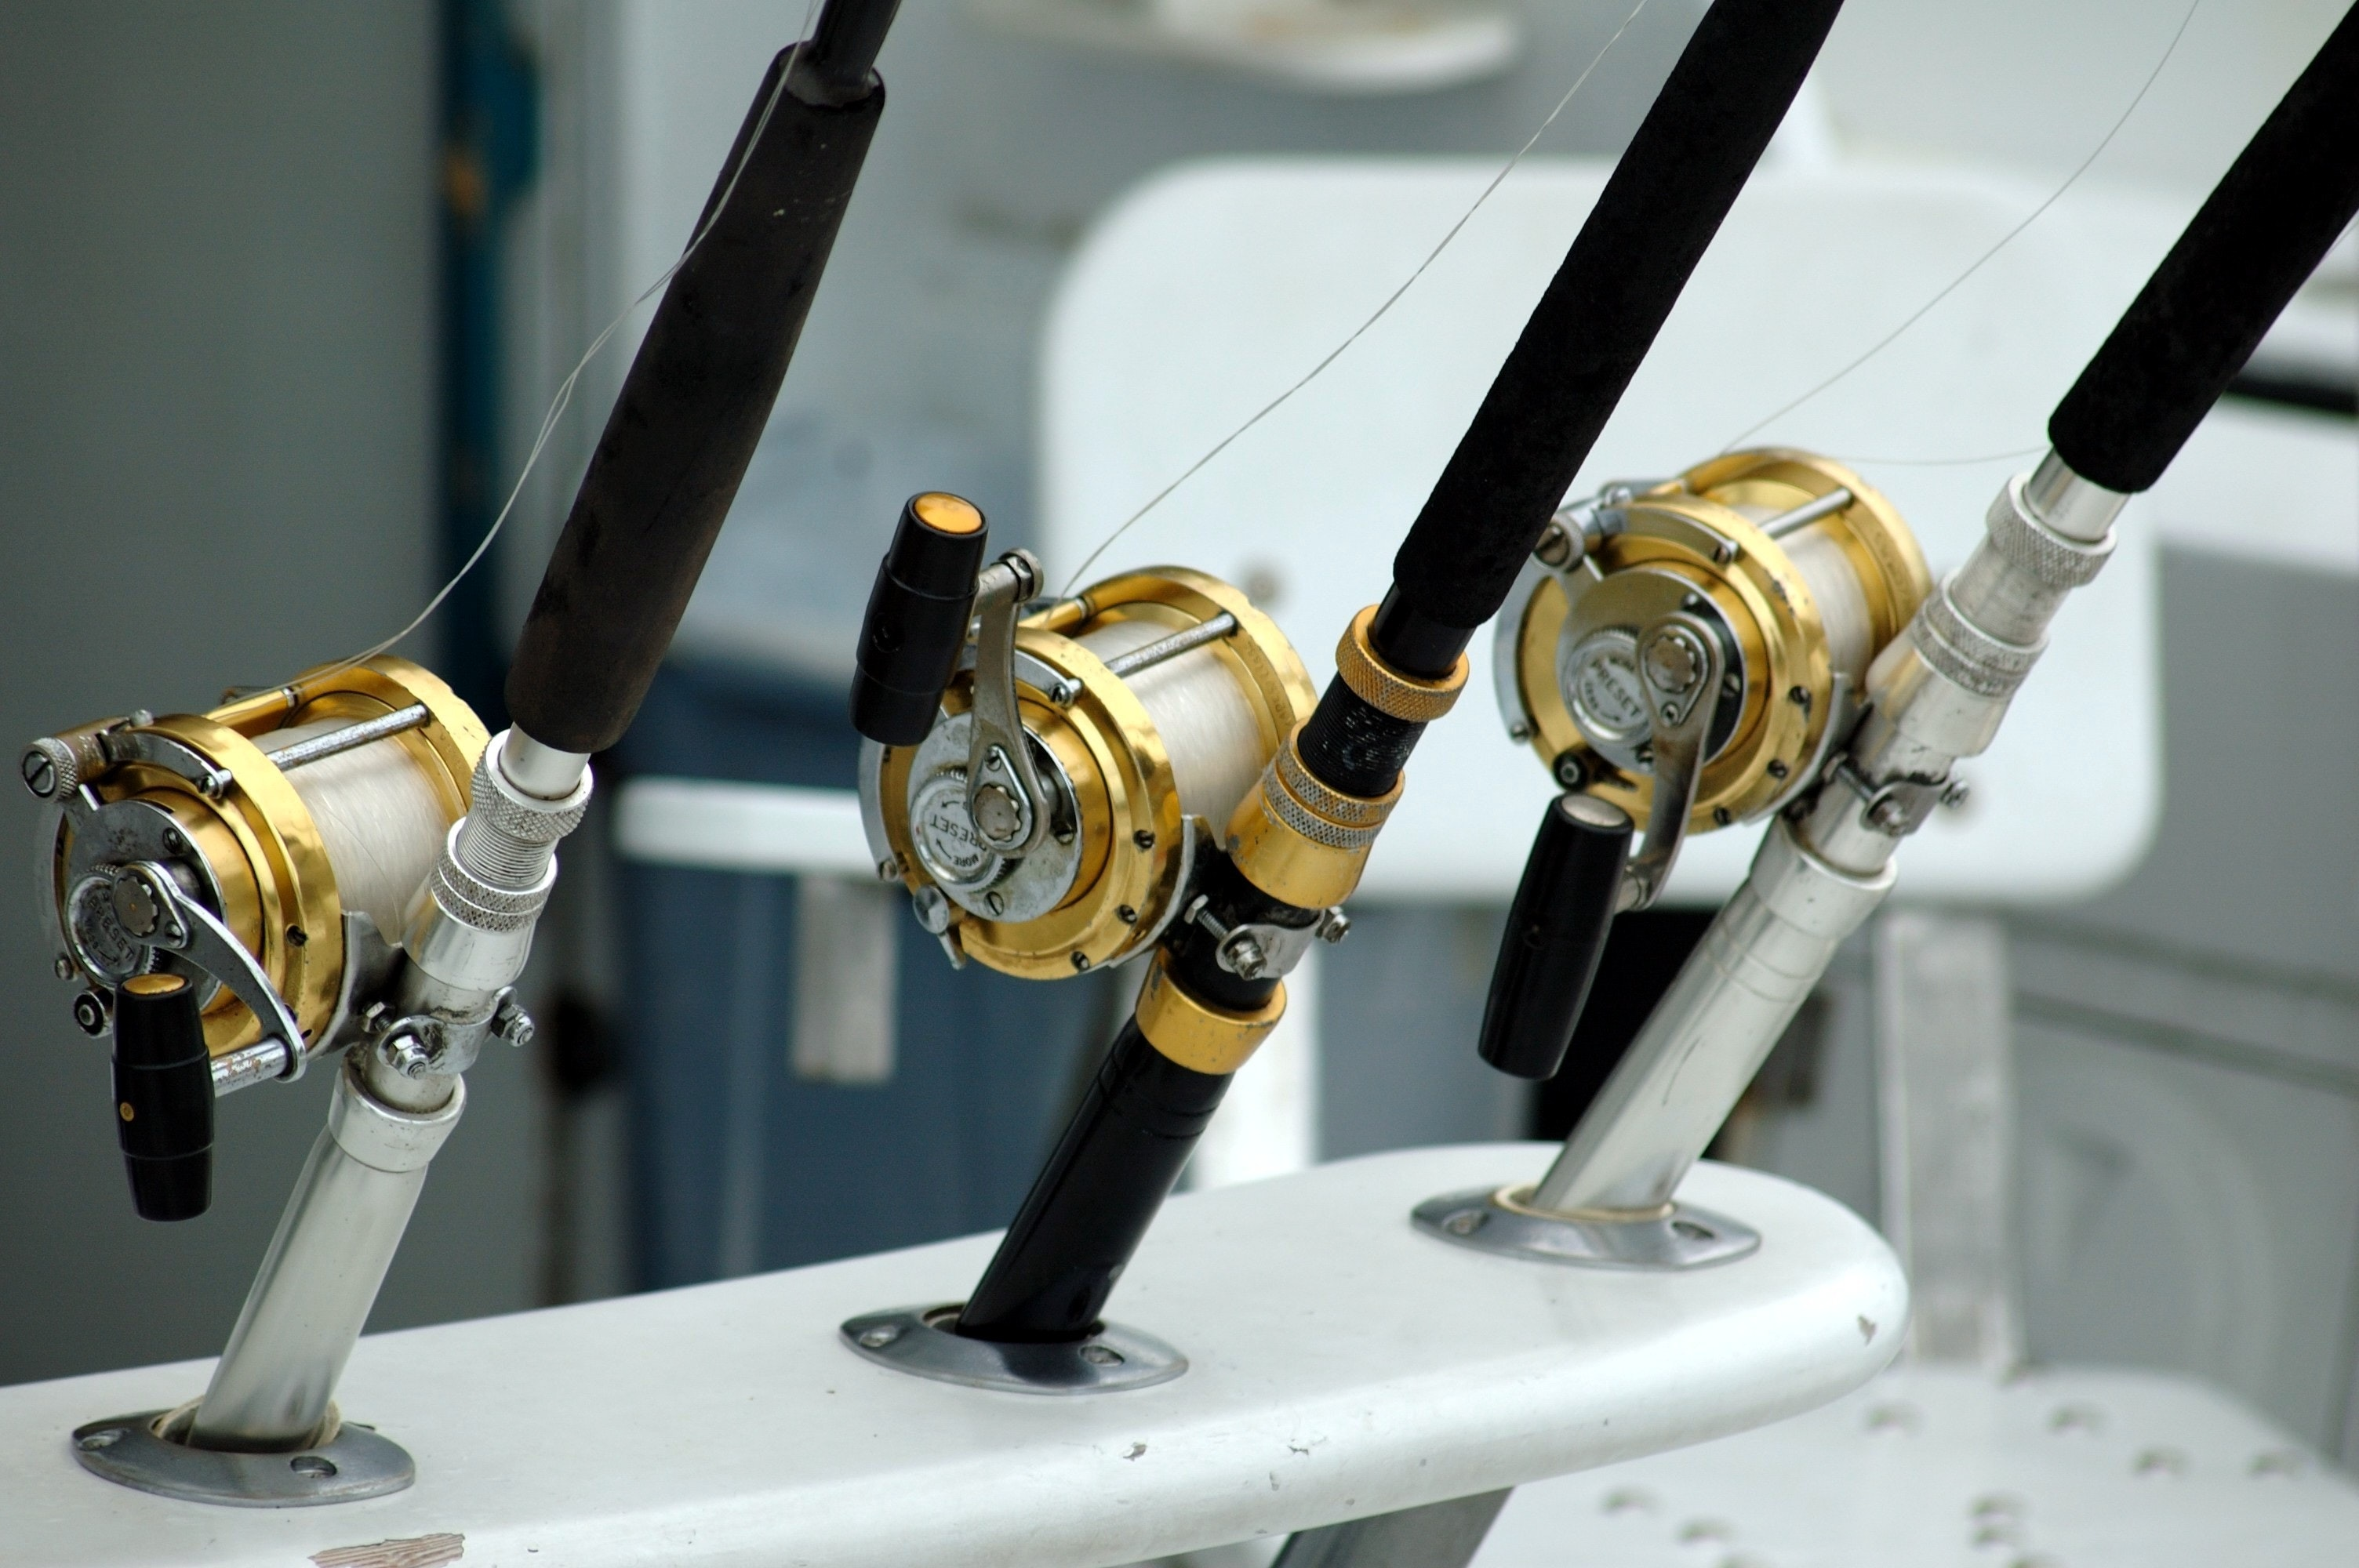 3 lined brass and black fishing reel photo